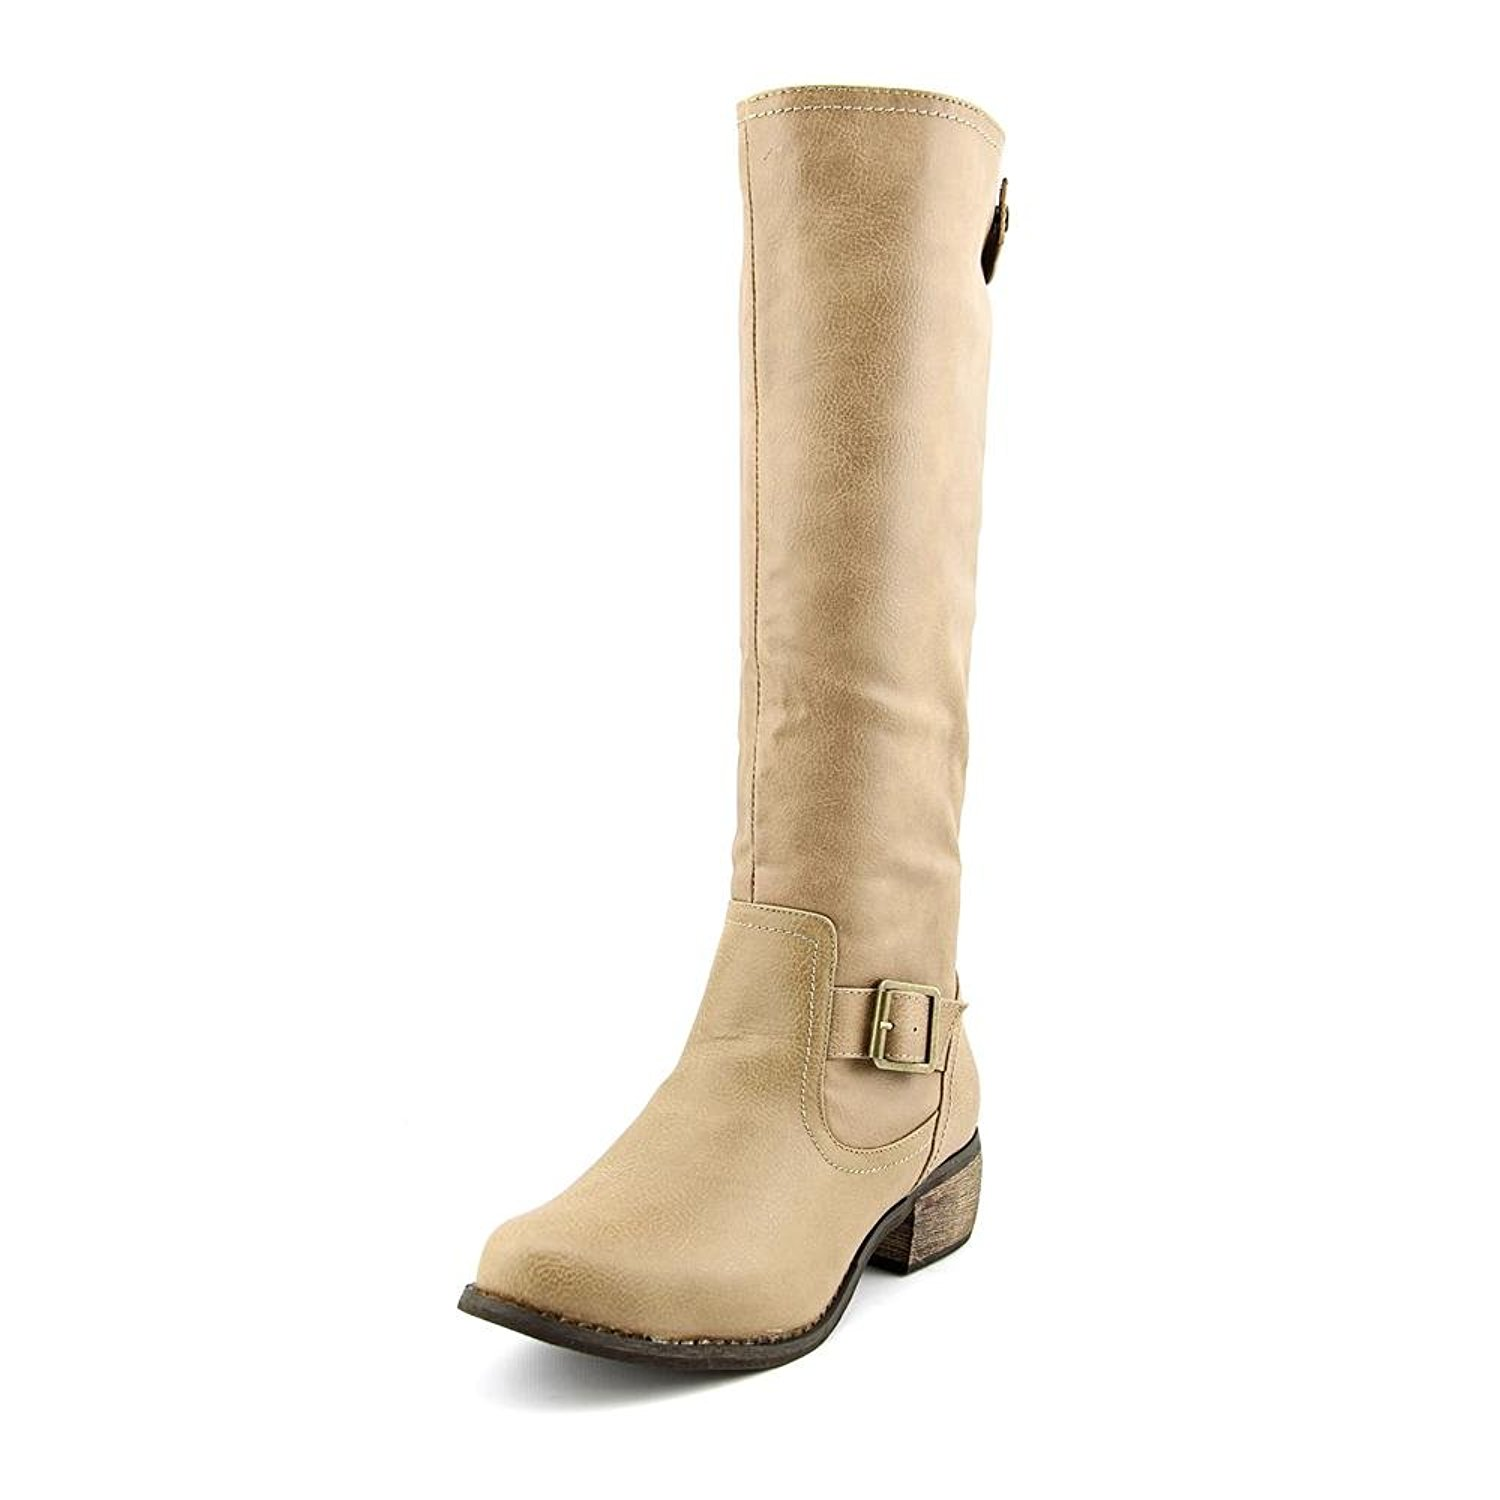 Rampage Womens Sylvestra Almond Toe Mid-Calf Fashion Boots, Taupe, Size 9.0 WQLT